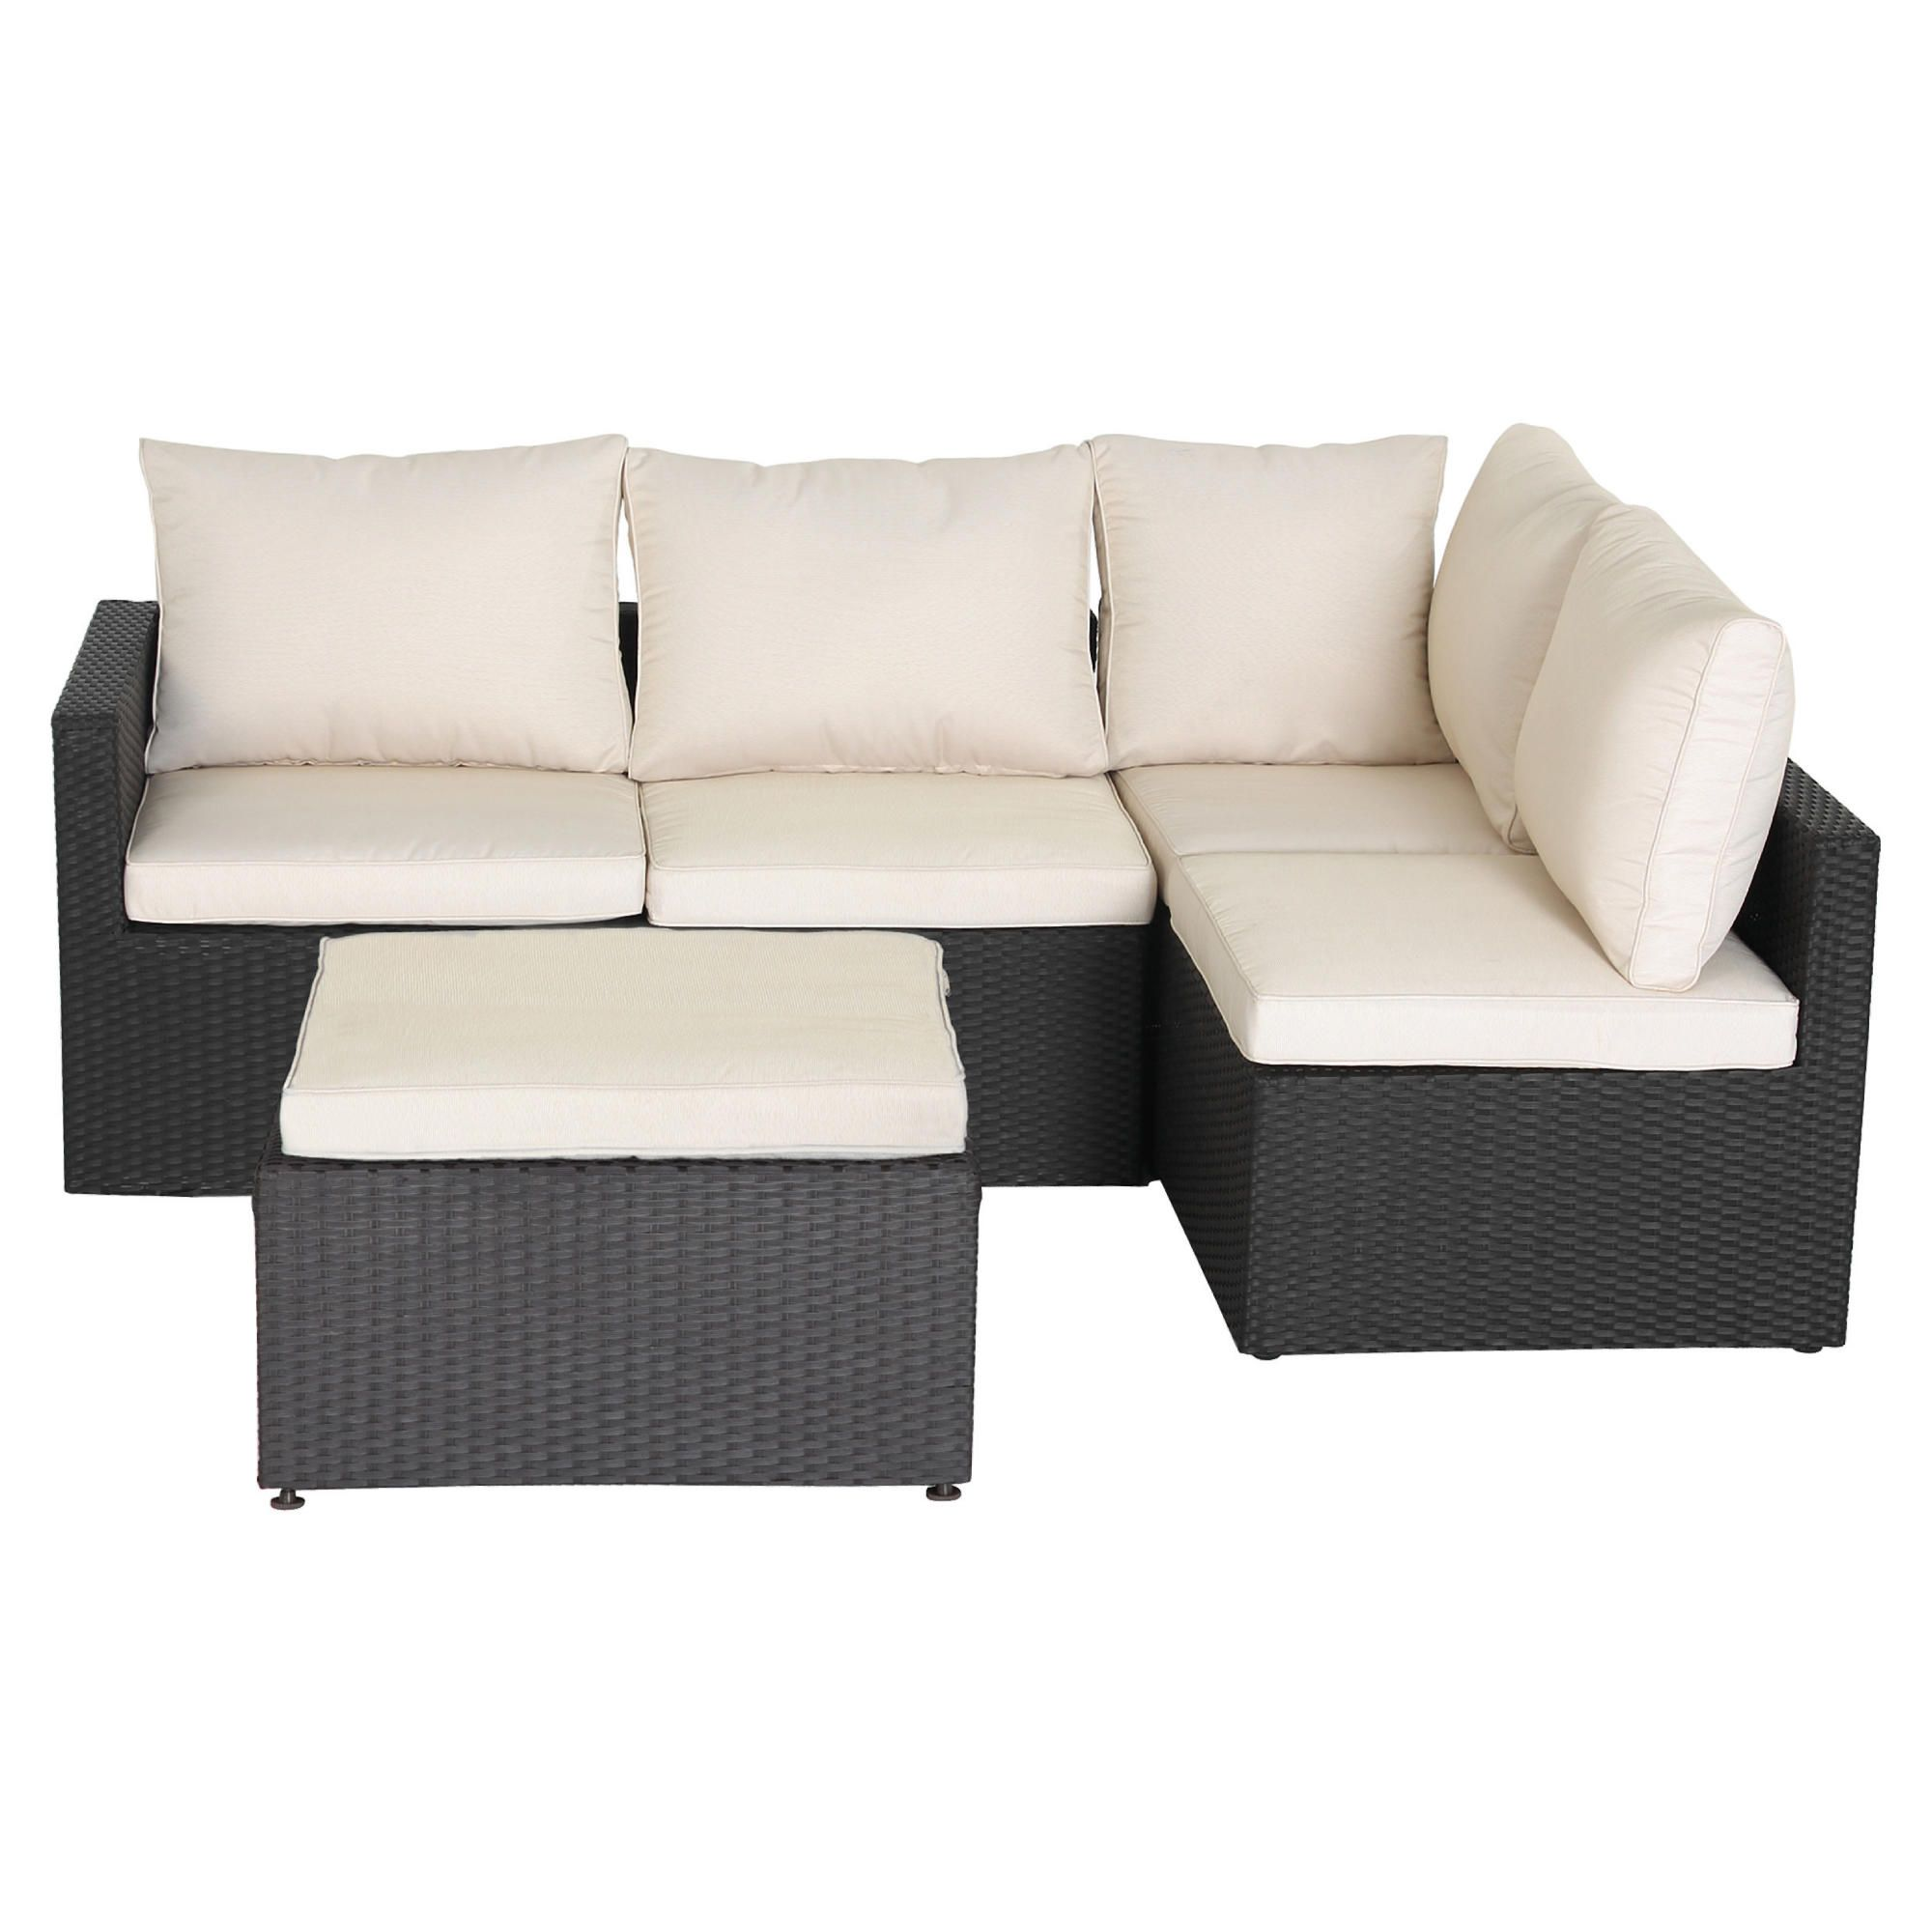 Darwin Corner Sofa Set (Aluminium) at Tesco Direct